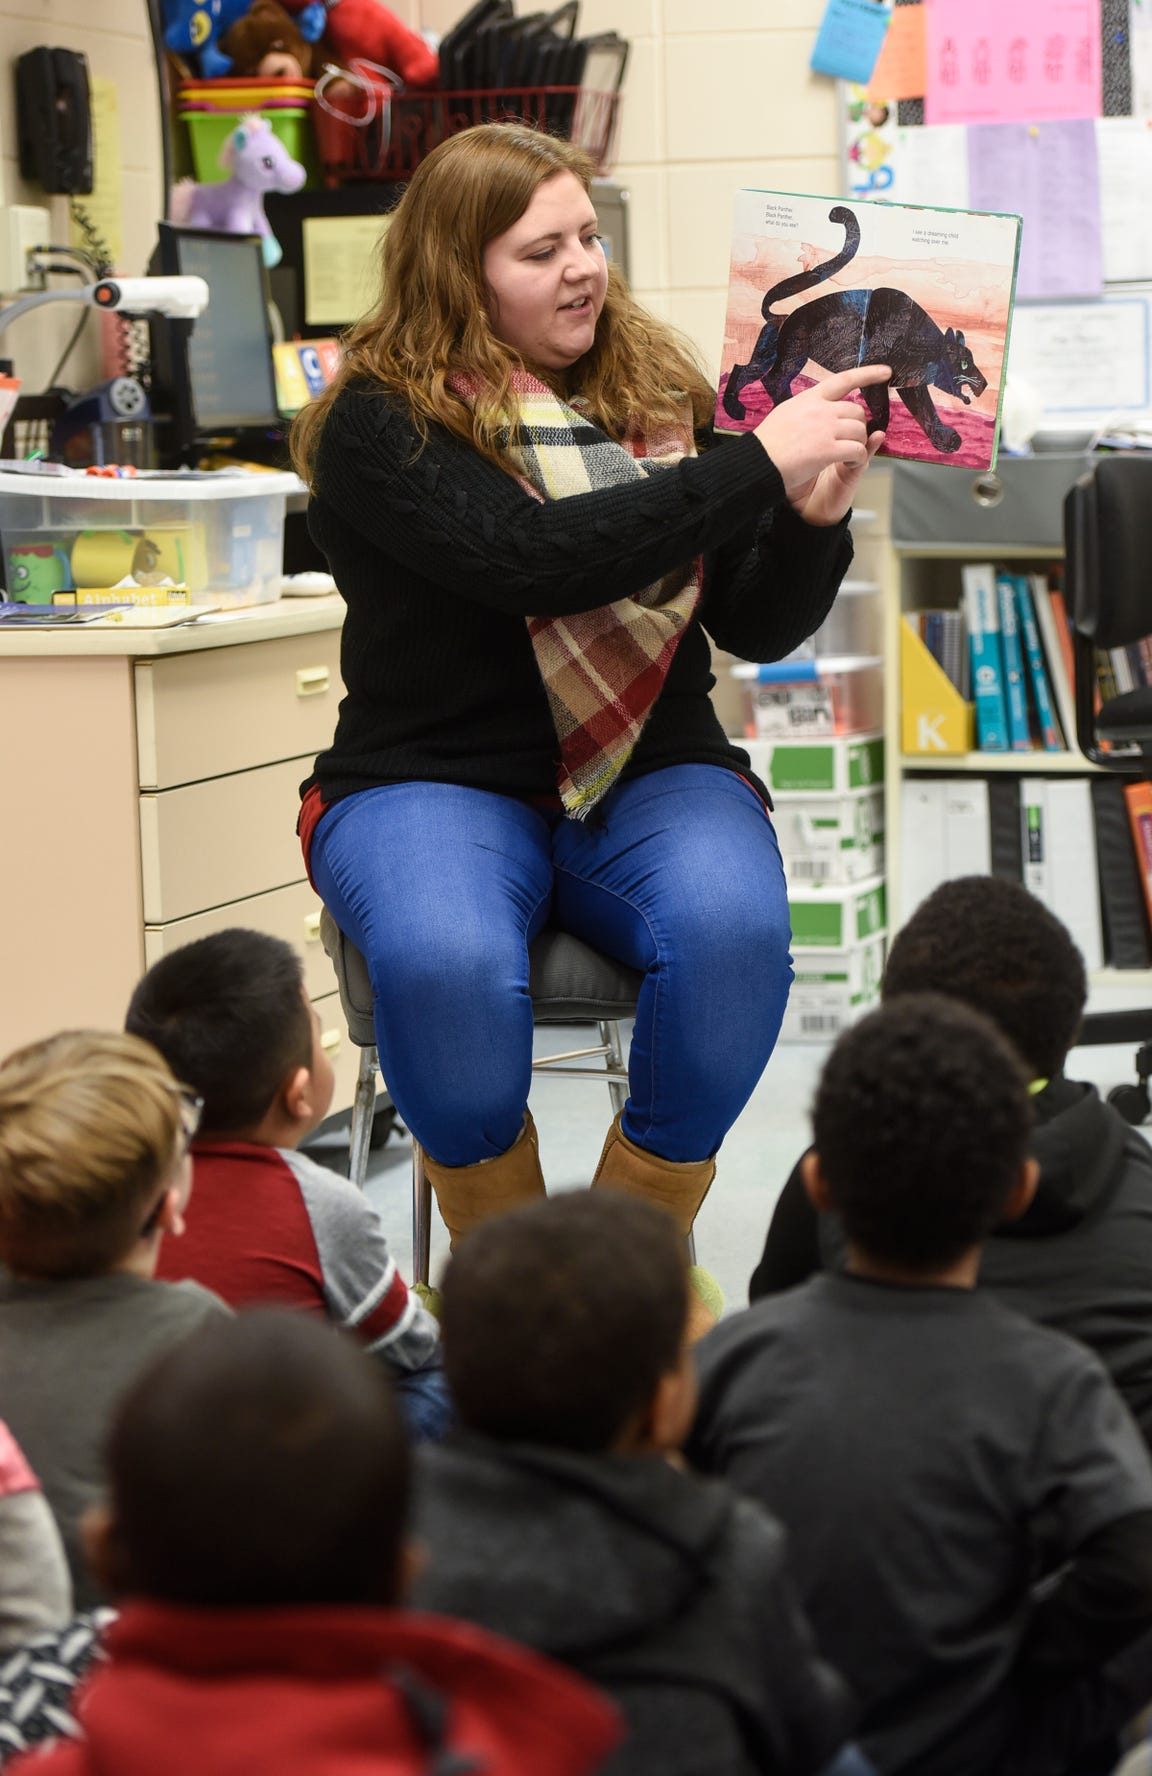 Samantha Backer goes through a book with kindergarten students Friday, Jan. 25, at Talahi Community School in St. Cloud. Backer is a permanent substitute teacher who fills in whenever Teachers On Call is unable to find a sub for Talahi.